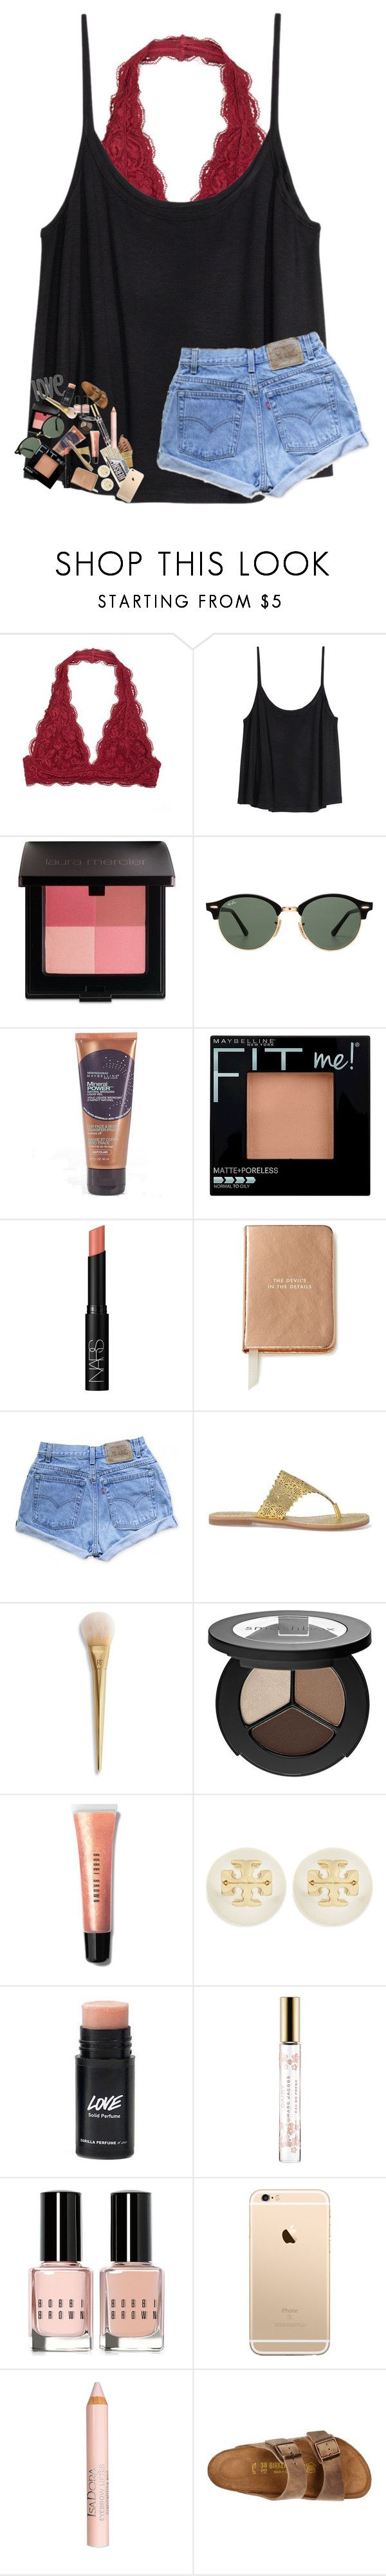 """""""probably gonna delete the polyvore app."""" by southern-belle606 ❤ liked on Polyvore featuring H&M, Laura Mercier, Ray-Ban, Maybelline, NARS Cosmetics, Kate Spade, Levi's, Tory Burch, Smashbox and Bobbi Brown Cosmetics"""